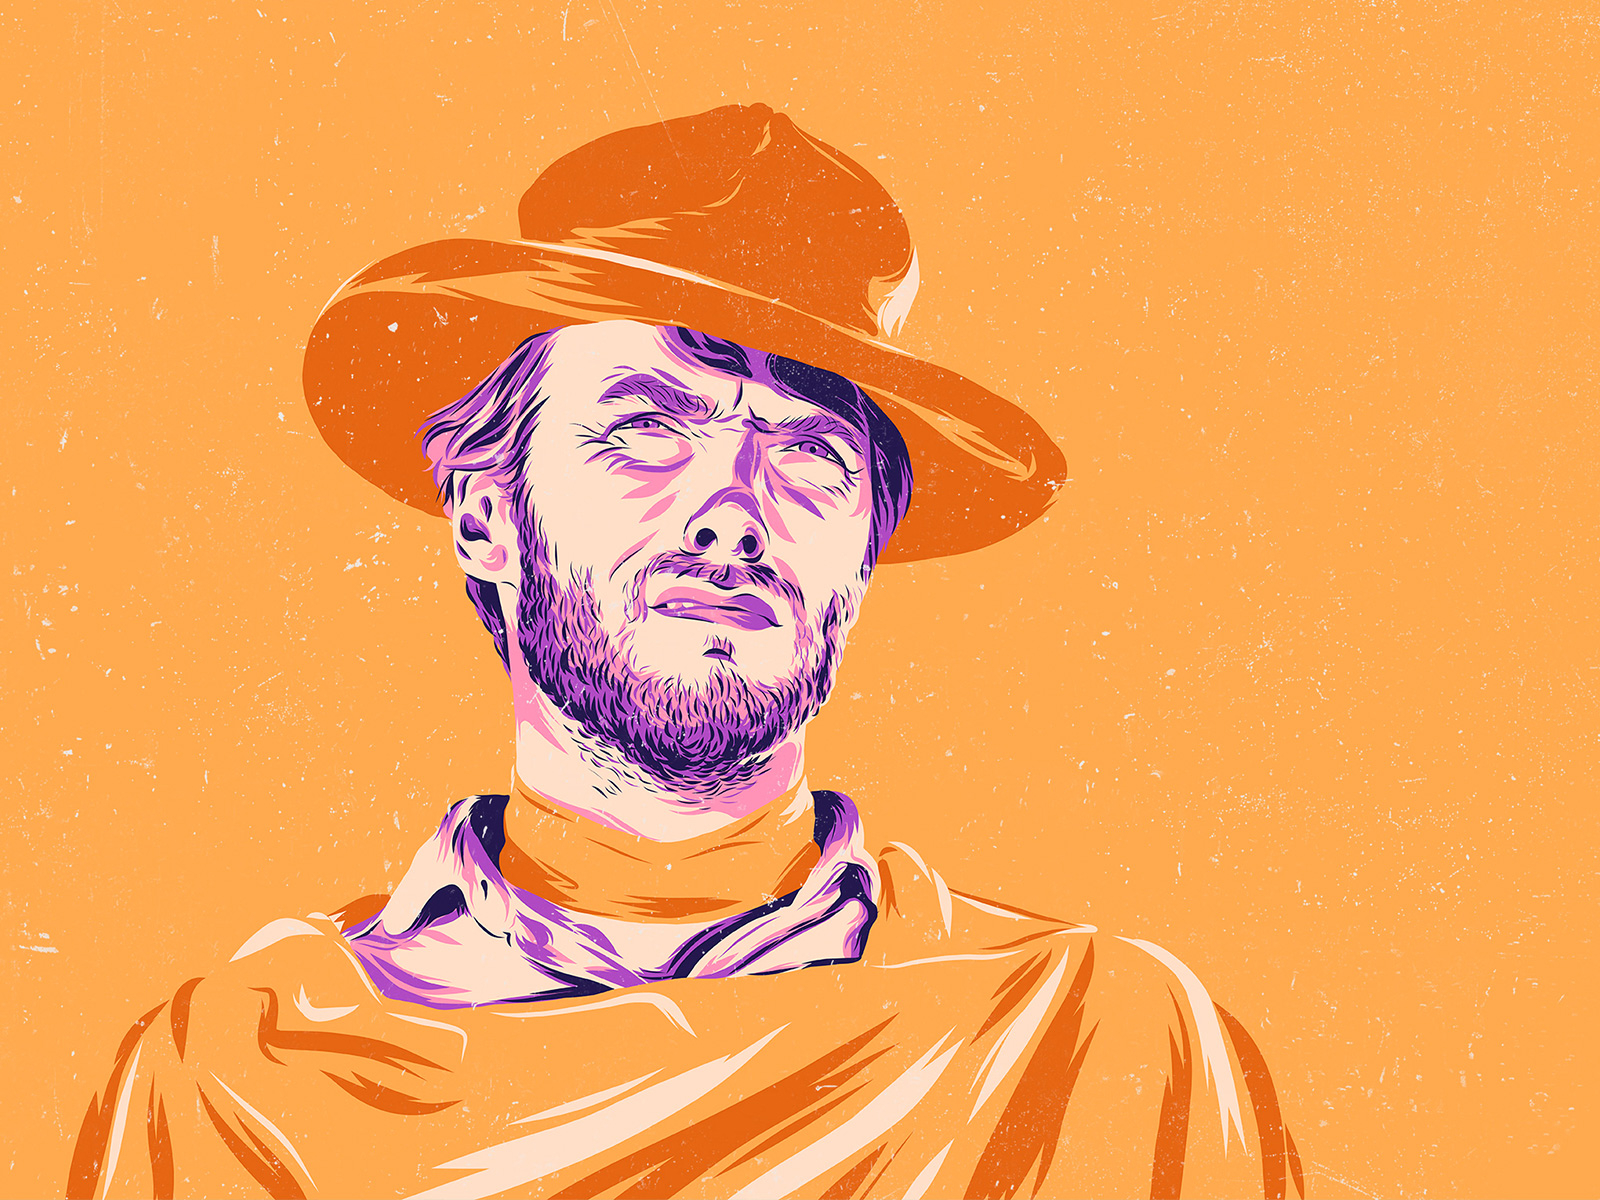 Clint Eastwood The Good The Bad And The Ugly By Marta Colmenero